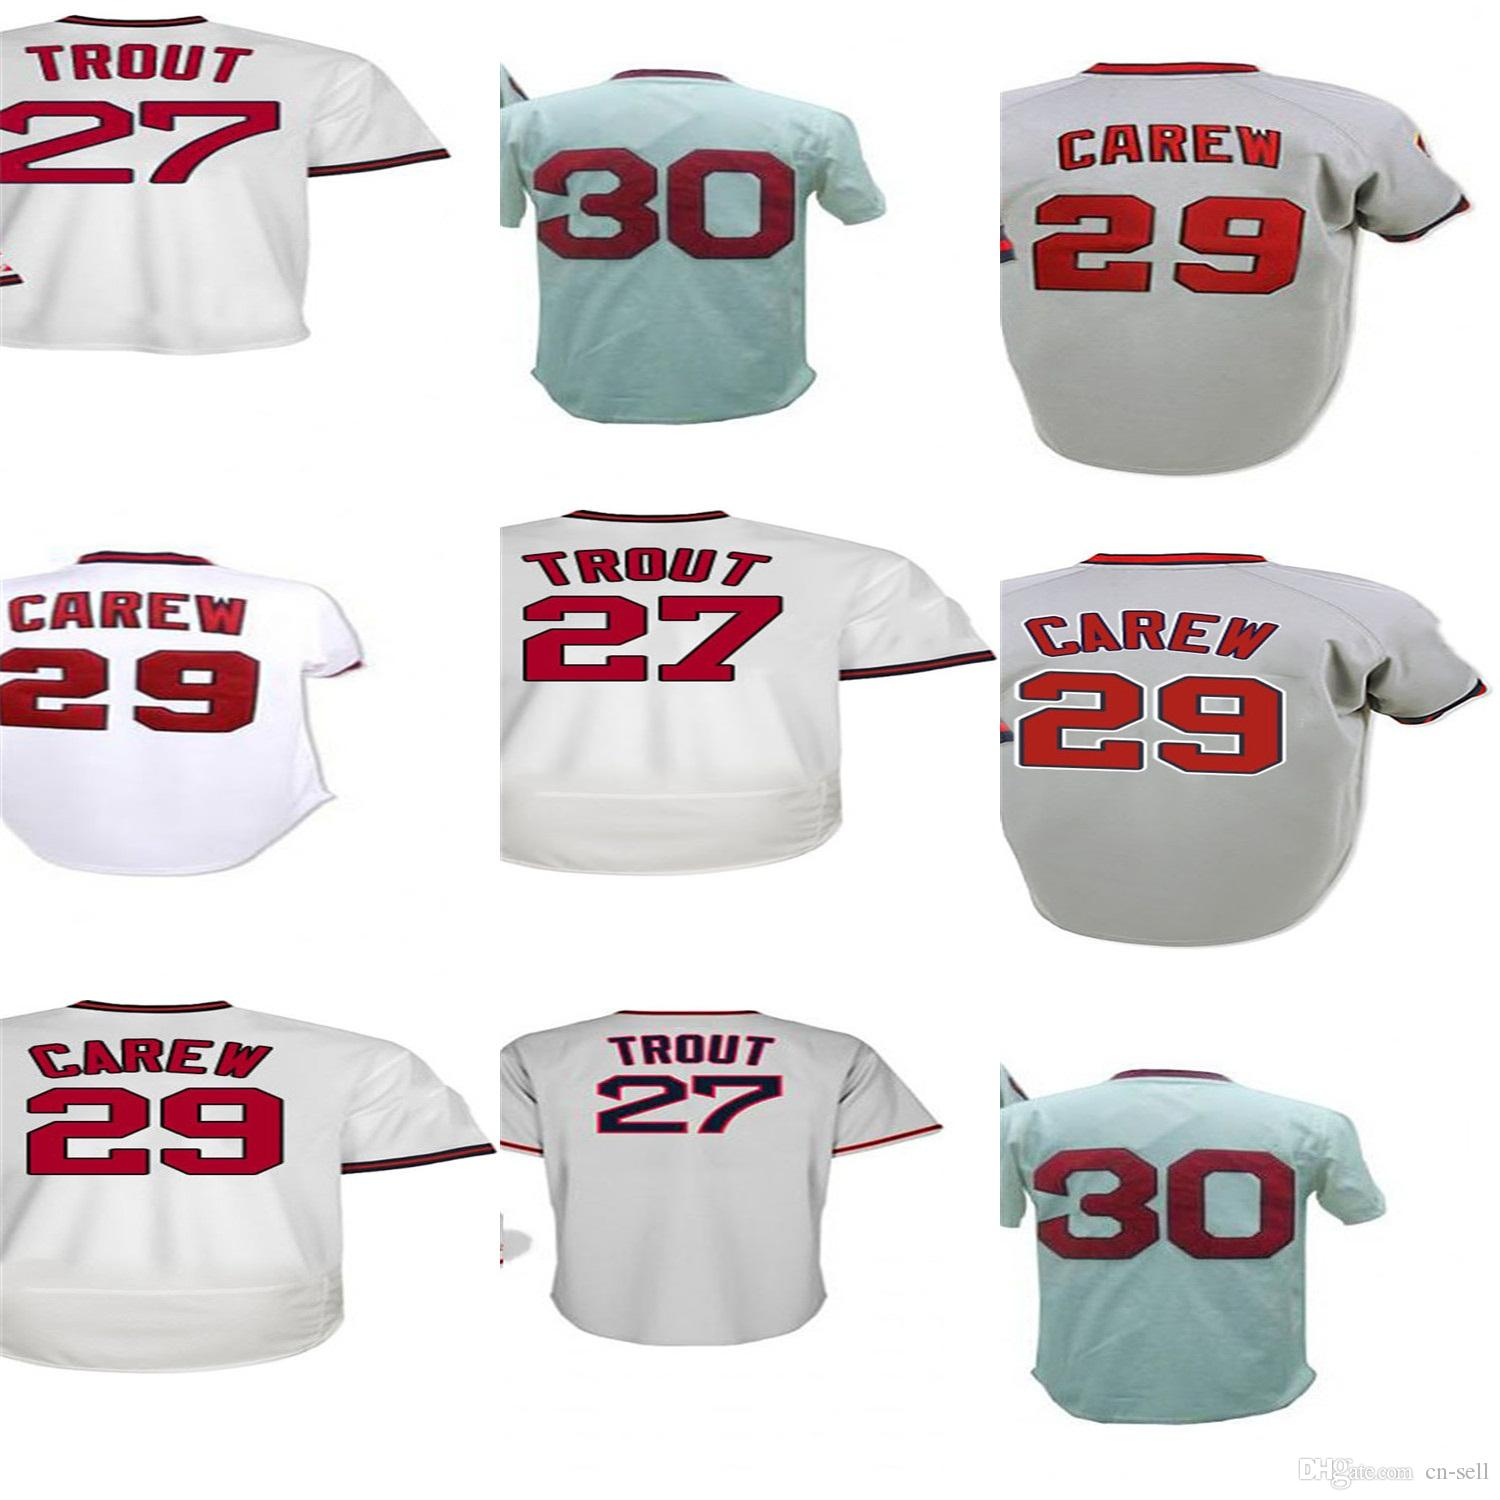 4789d98d05f ... real los angeles 29 rod carew 27 trout 30 nolan ryan women youth mens  toddler turn